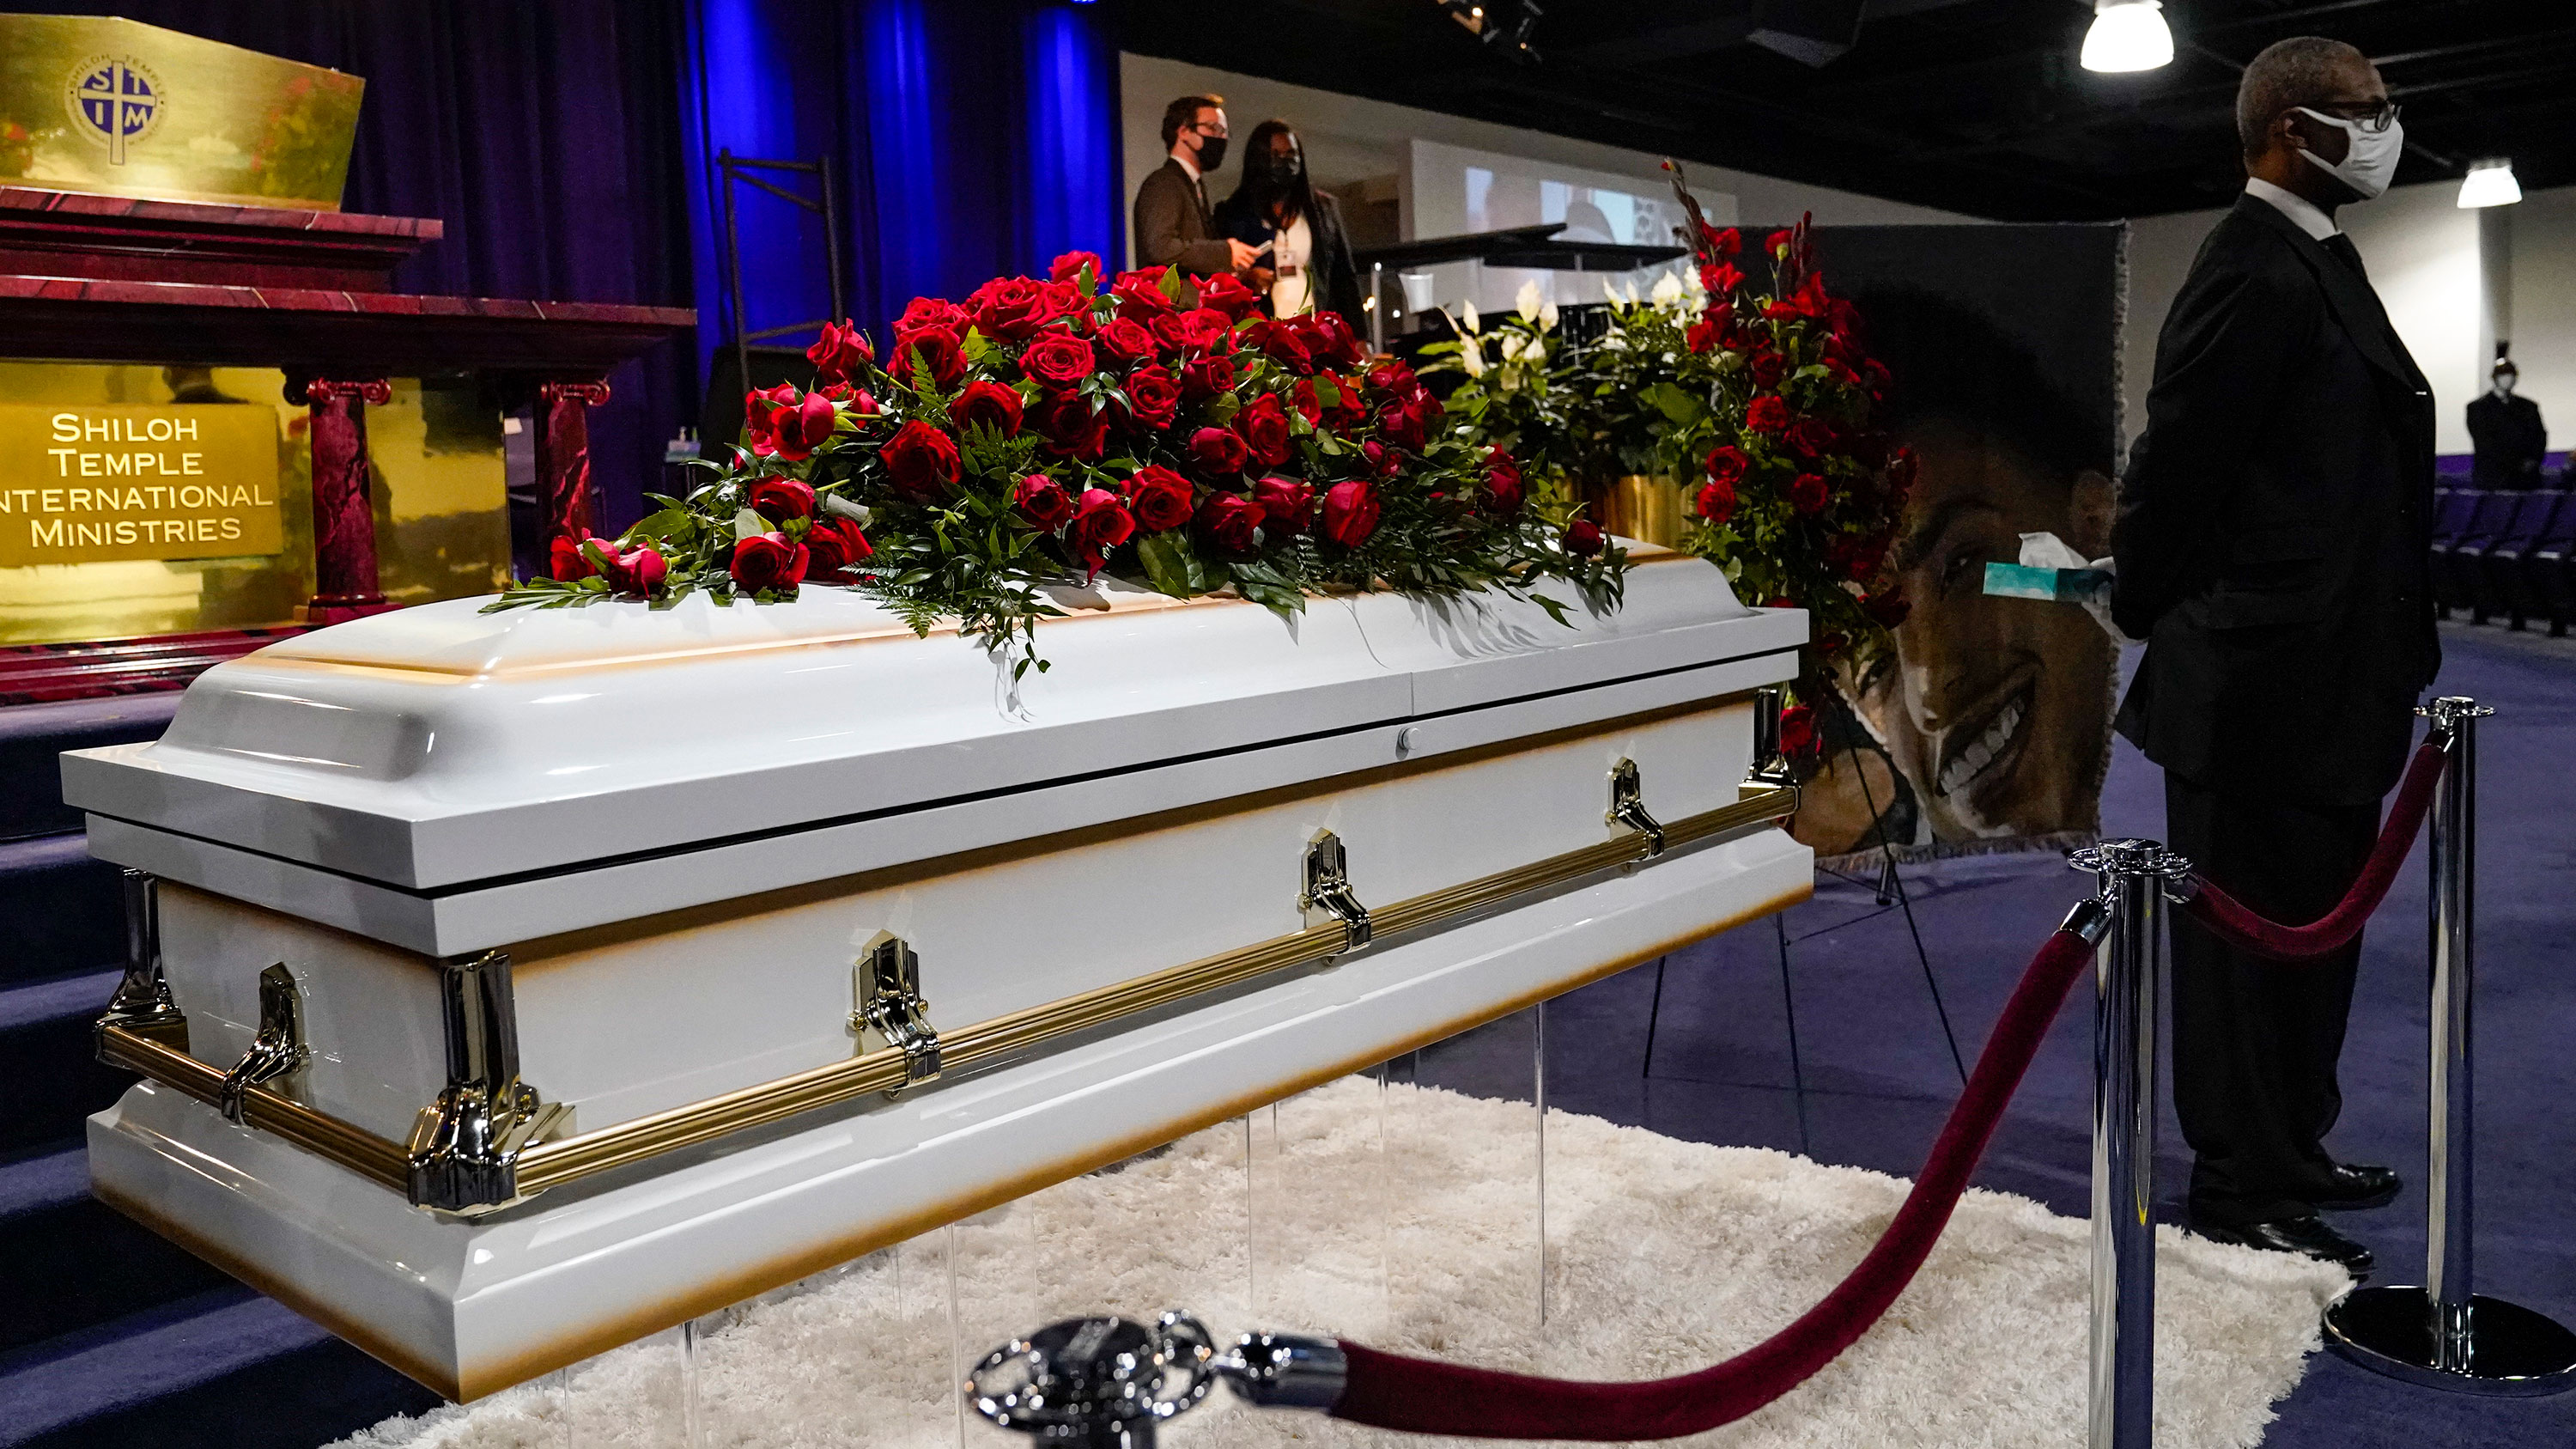 Daunte Wright's mother says she 'never imagined' she'd be standing there at his funeral